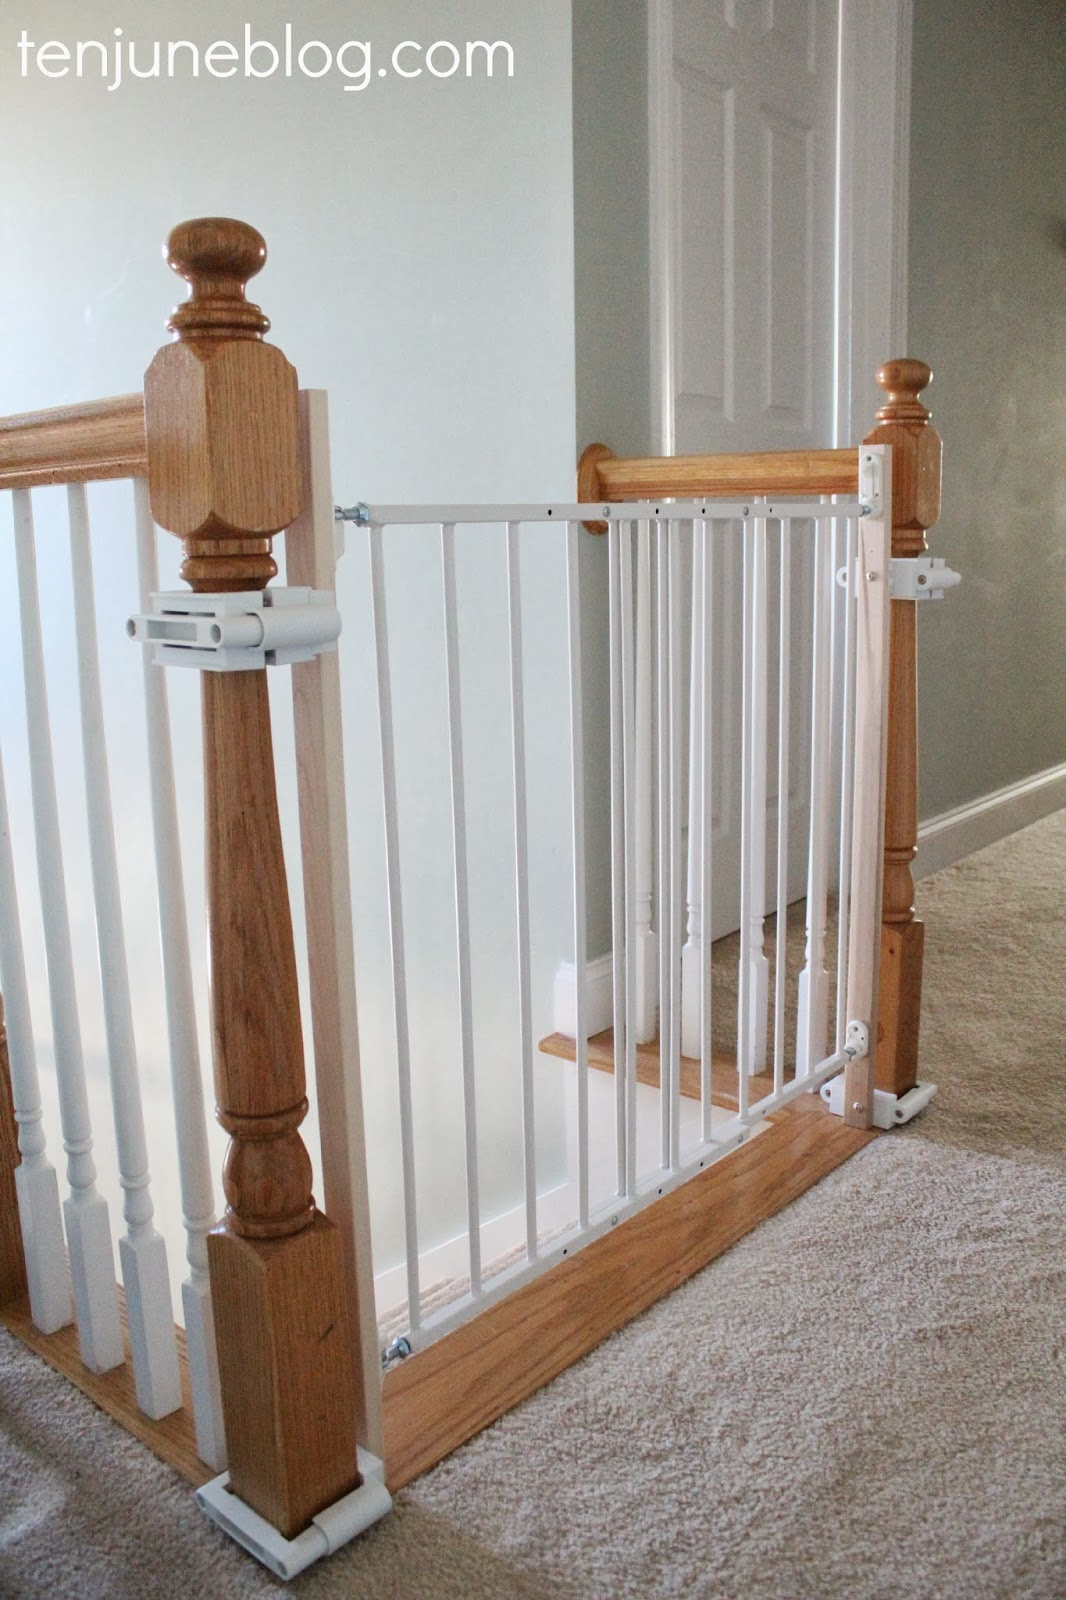 Ten June Baby And Toddler Proofing Ideas For Your Home